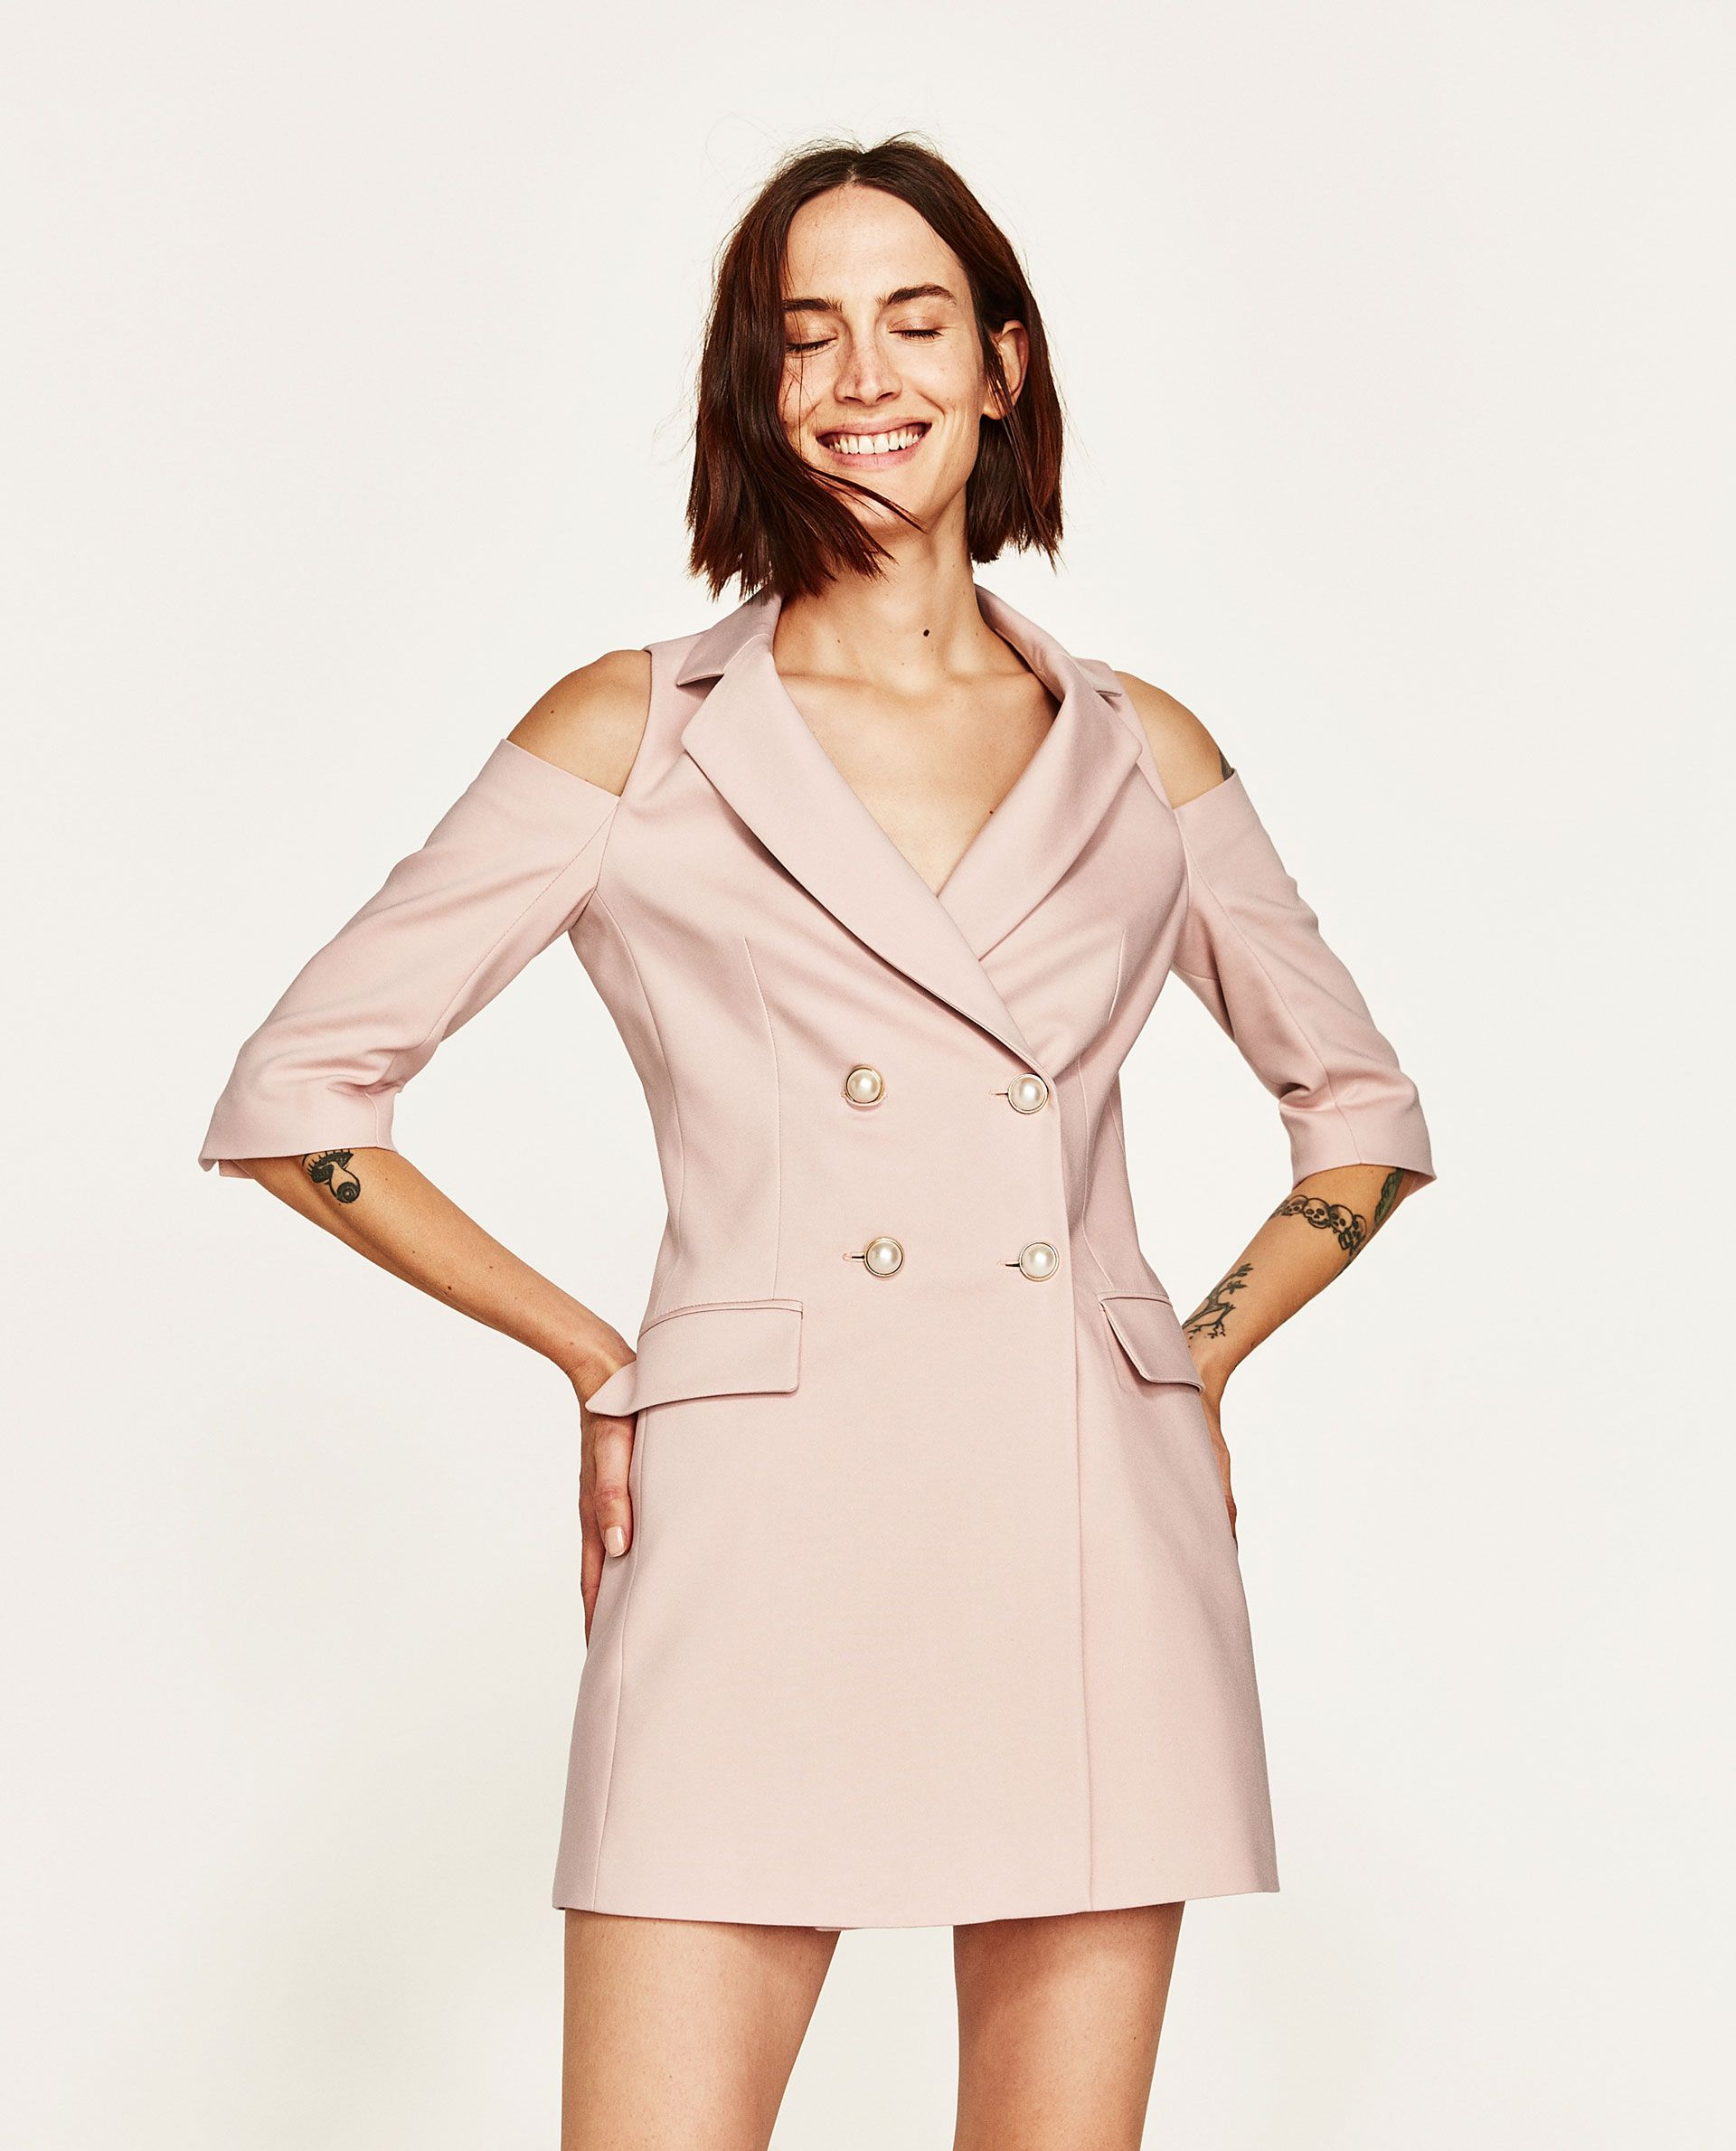 0cb8a26c Image 2 of BLAZER DRESS from Zara | outfits + fashion in 2019 ...